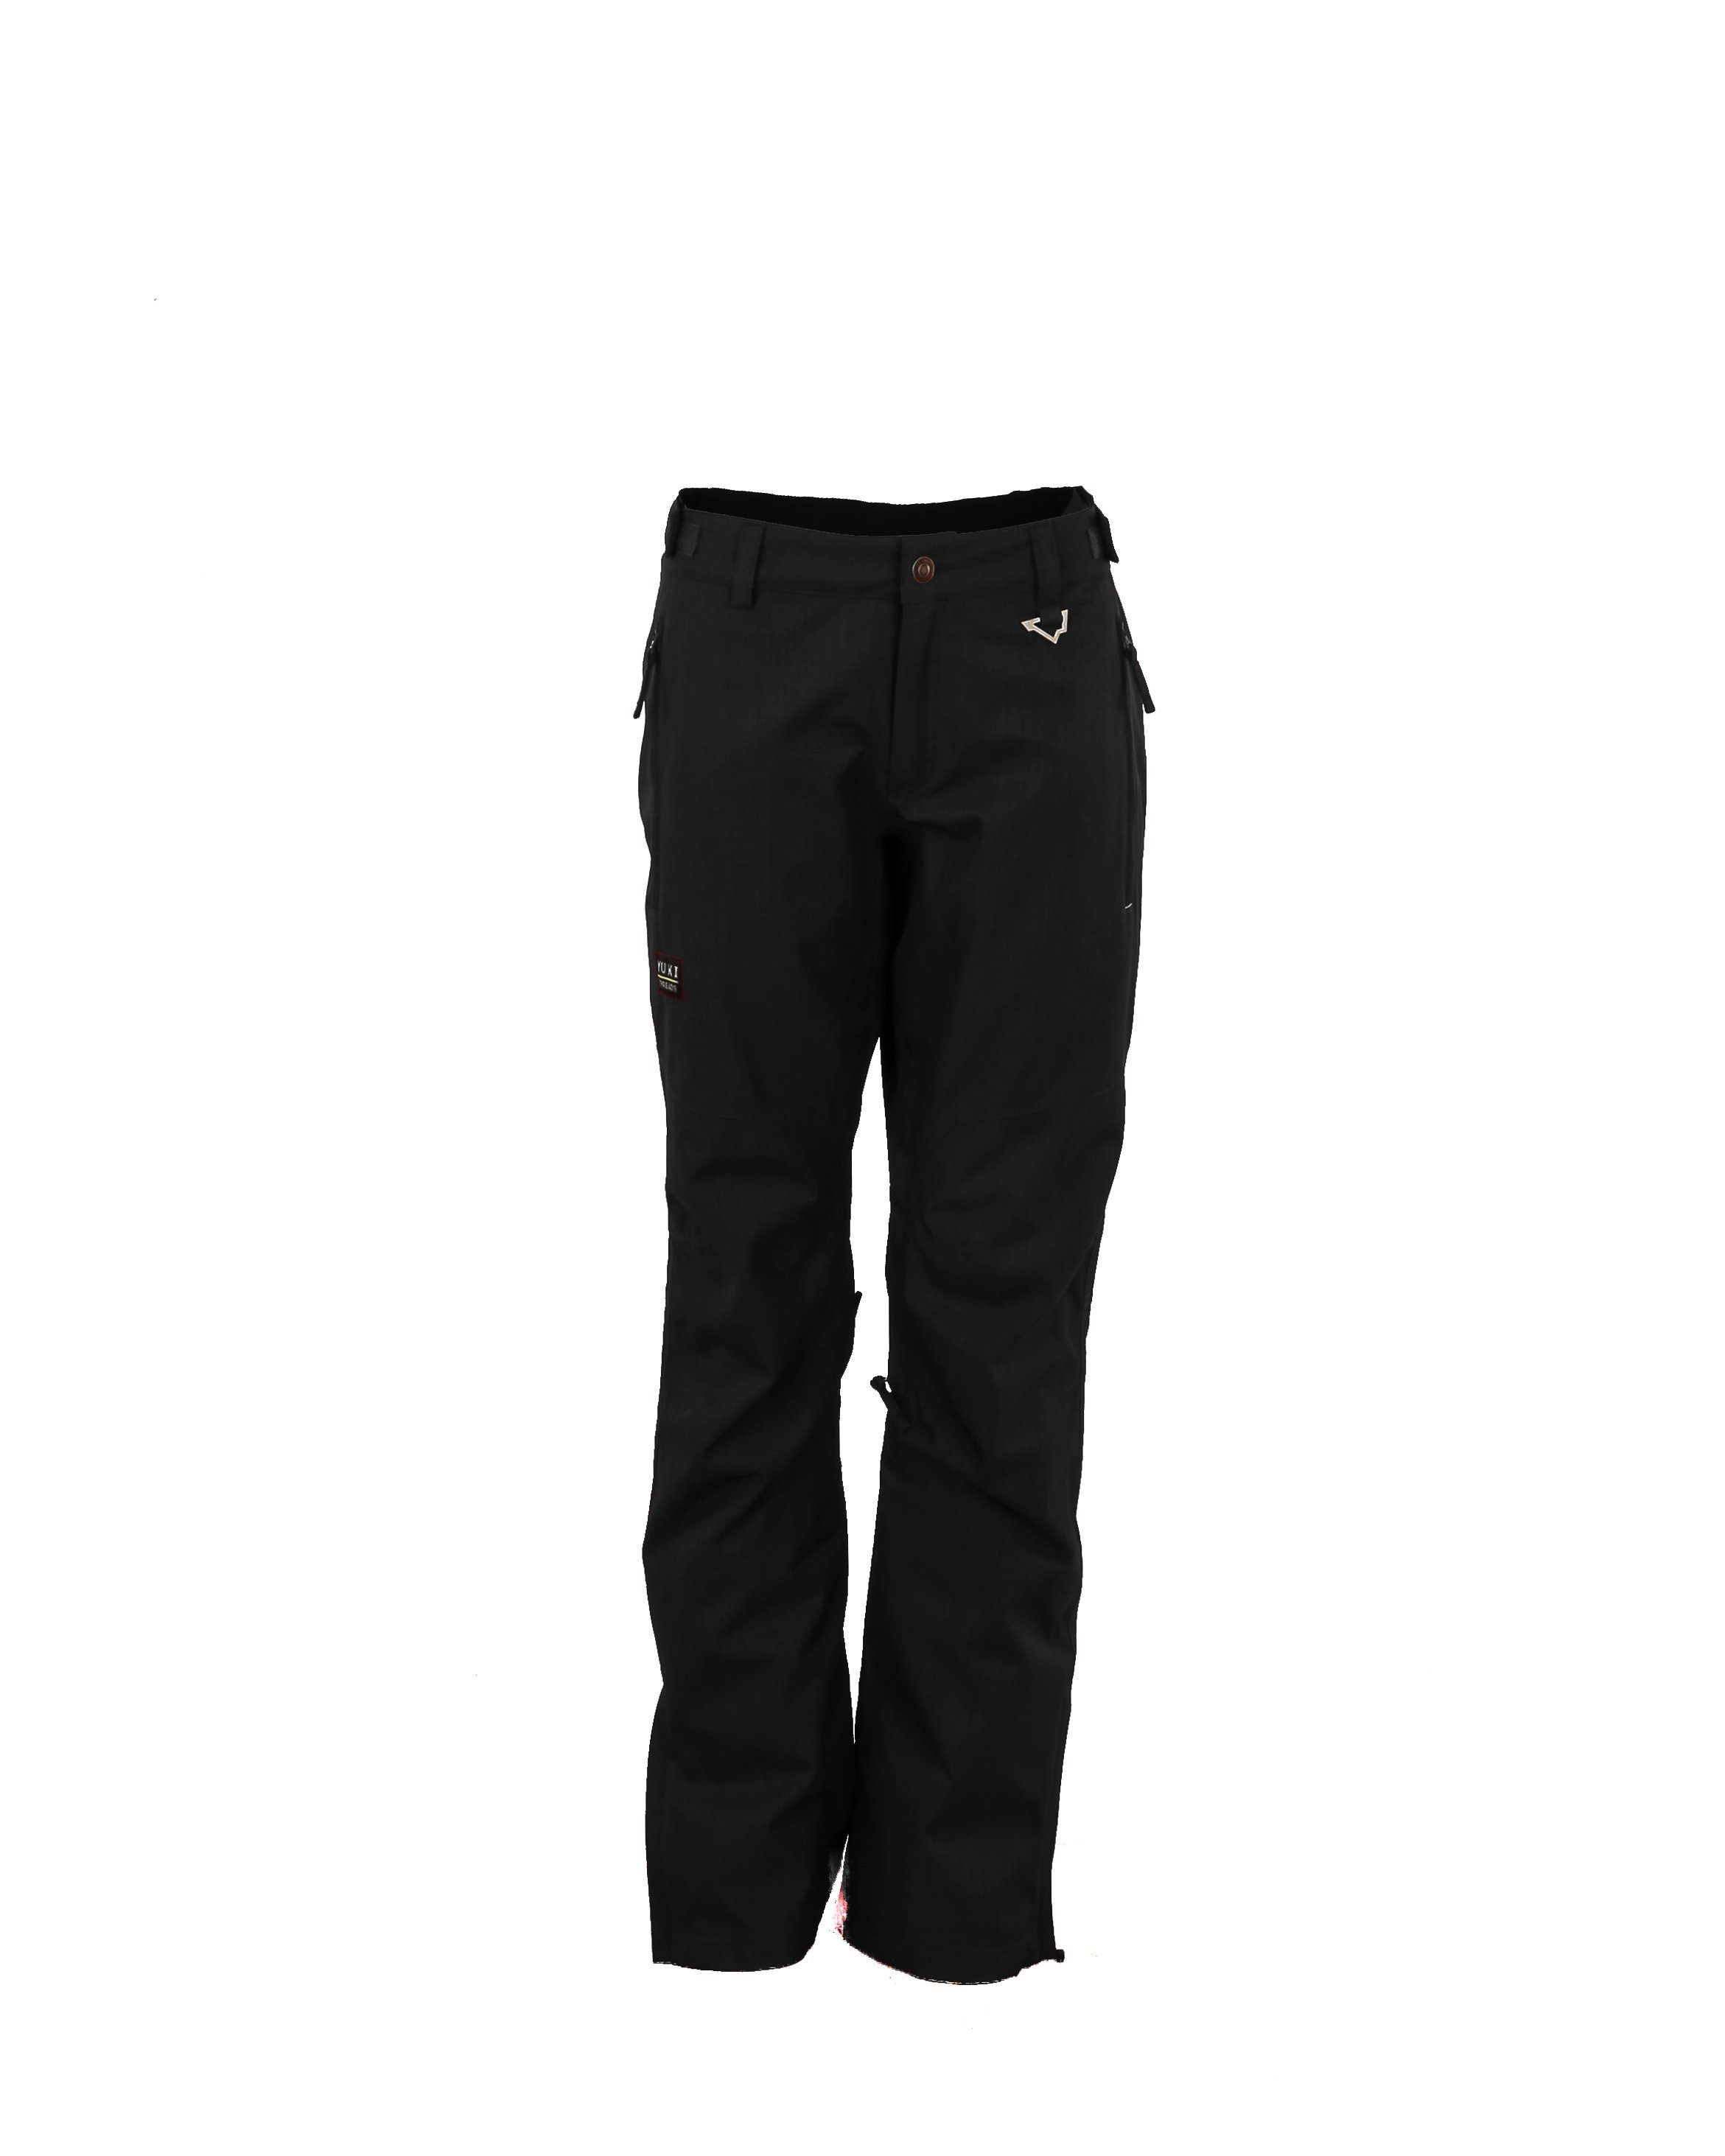 OUTERWEAR Brooklyn Pant Black